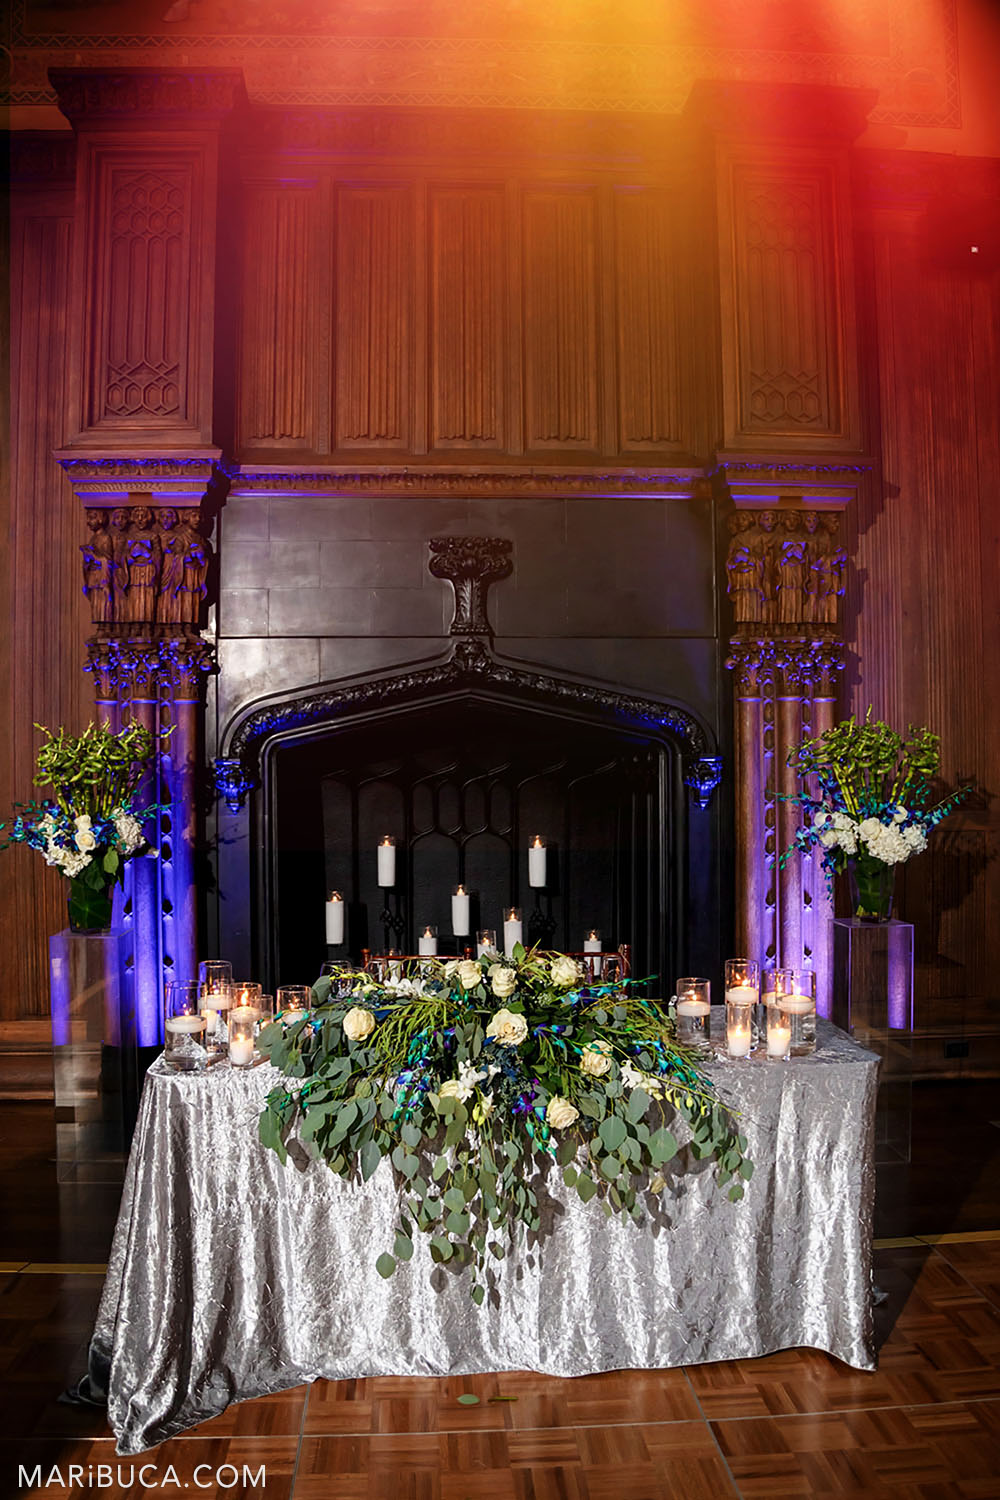 Bride and groom table with big beautiful white flowers surrounded fireplace with lit candles and purple and orange lights in the Great Hall, Kohl Mansion, Burlingame